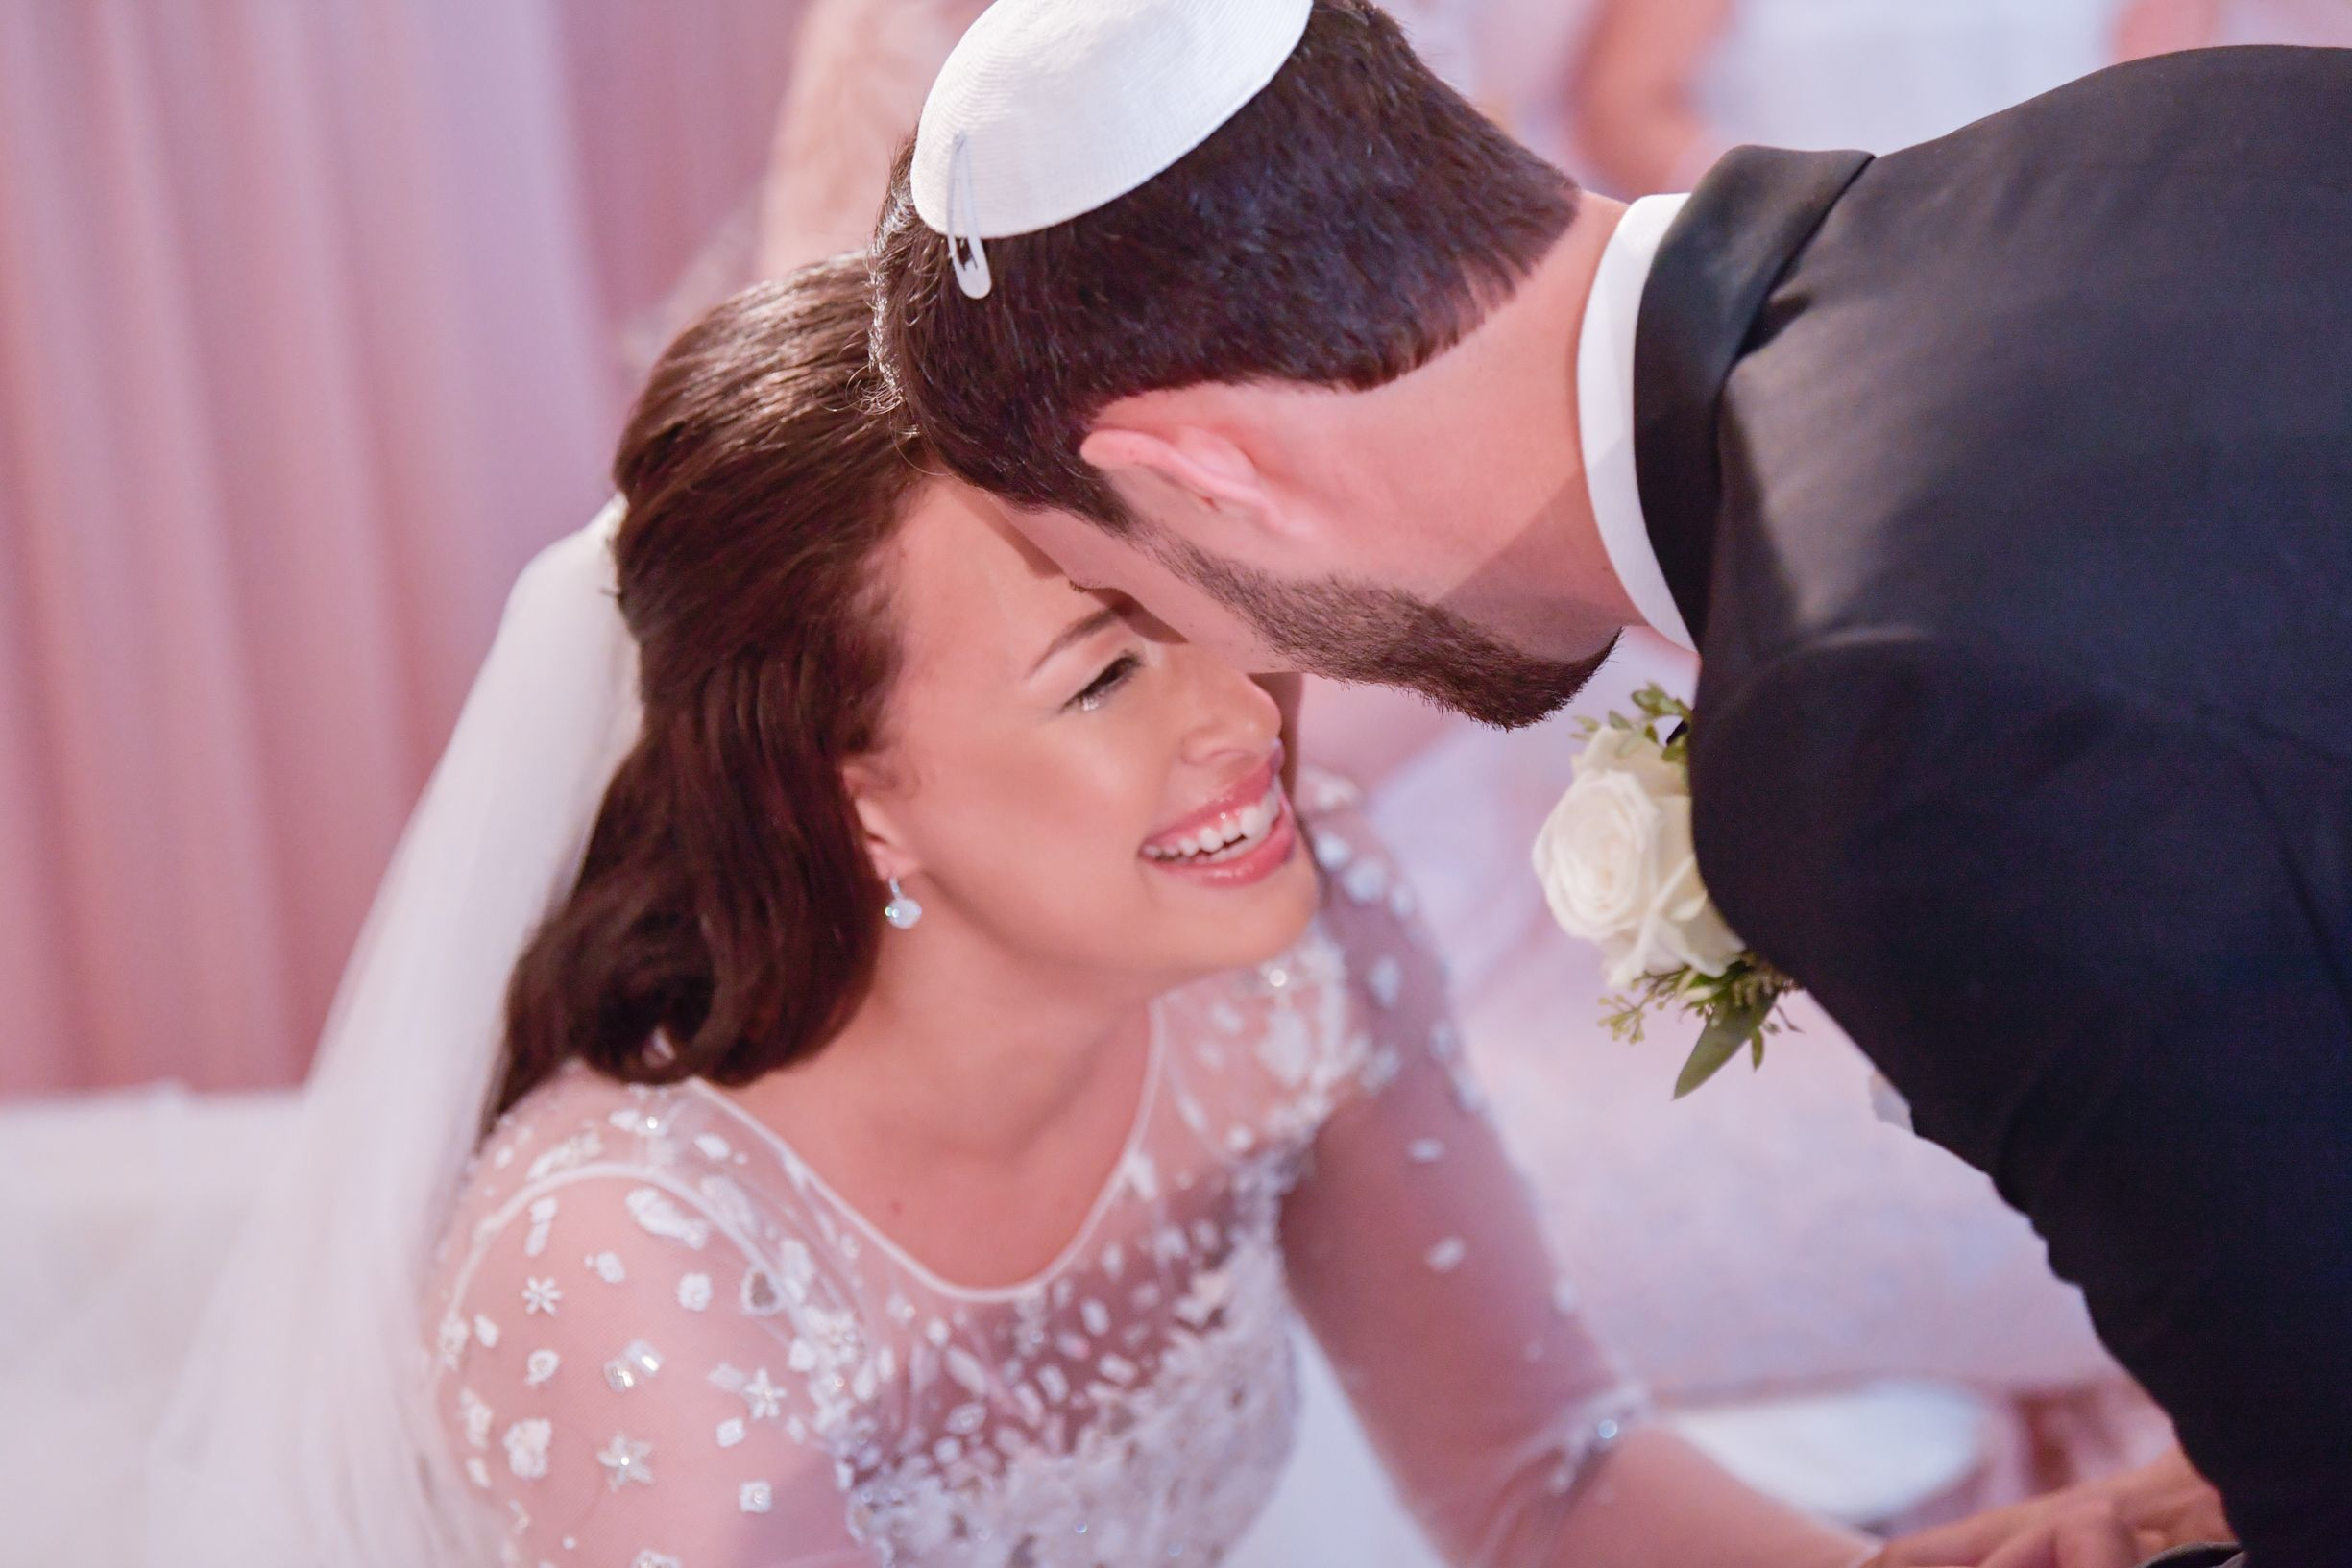 Arielle Belfer and Jacob Wischnia share a special moment at the veiling ceremony.